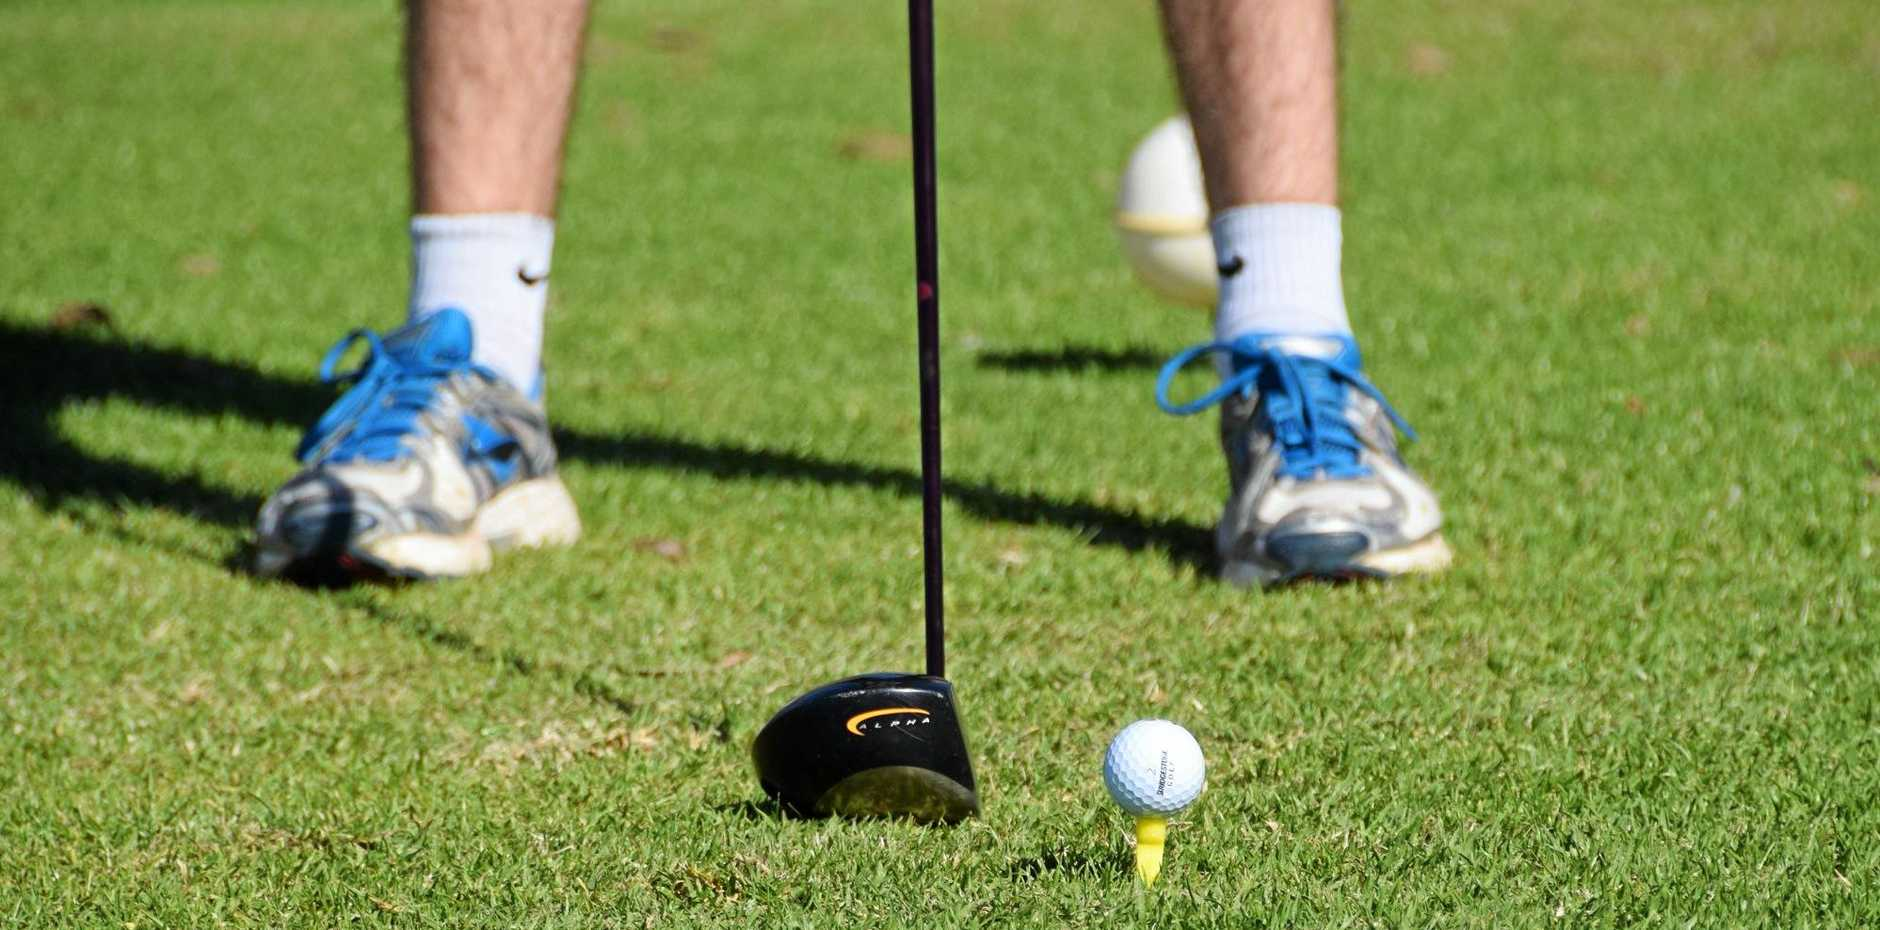 RESULTS: On Sunday, 57 golfers from Murgon, Nanango, Kingaroy, Kumbia, Goomeri, Crows Nest, Goombungee and Biloela played across four grades.